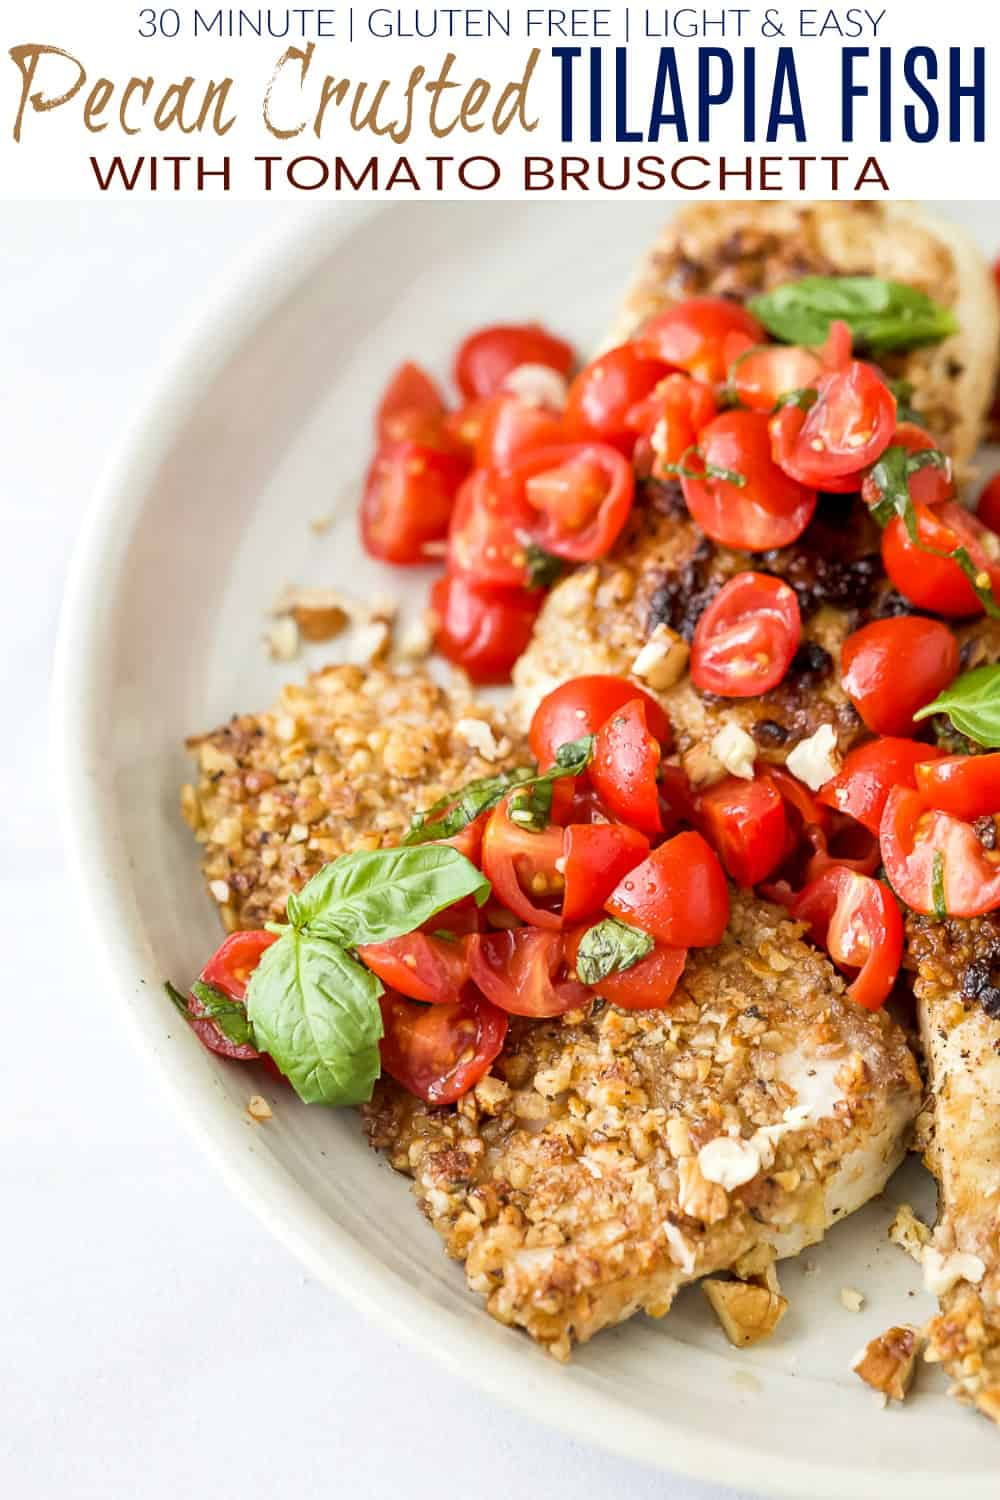 pinterest image for pecan crusted tilapia with tomato bruschetta